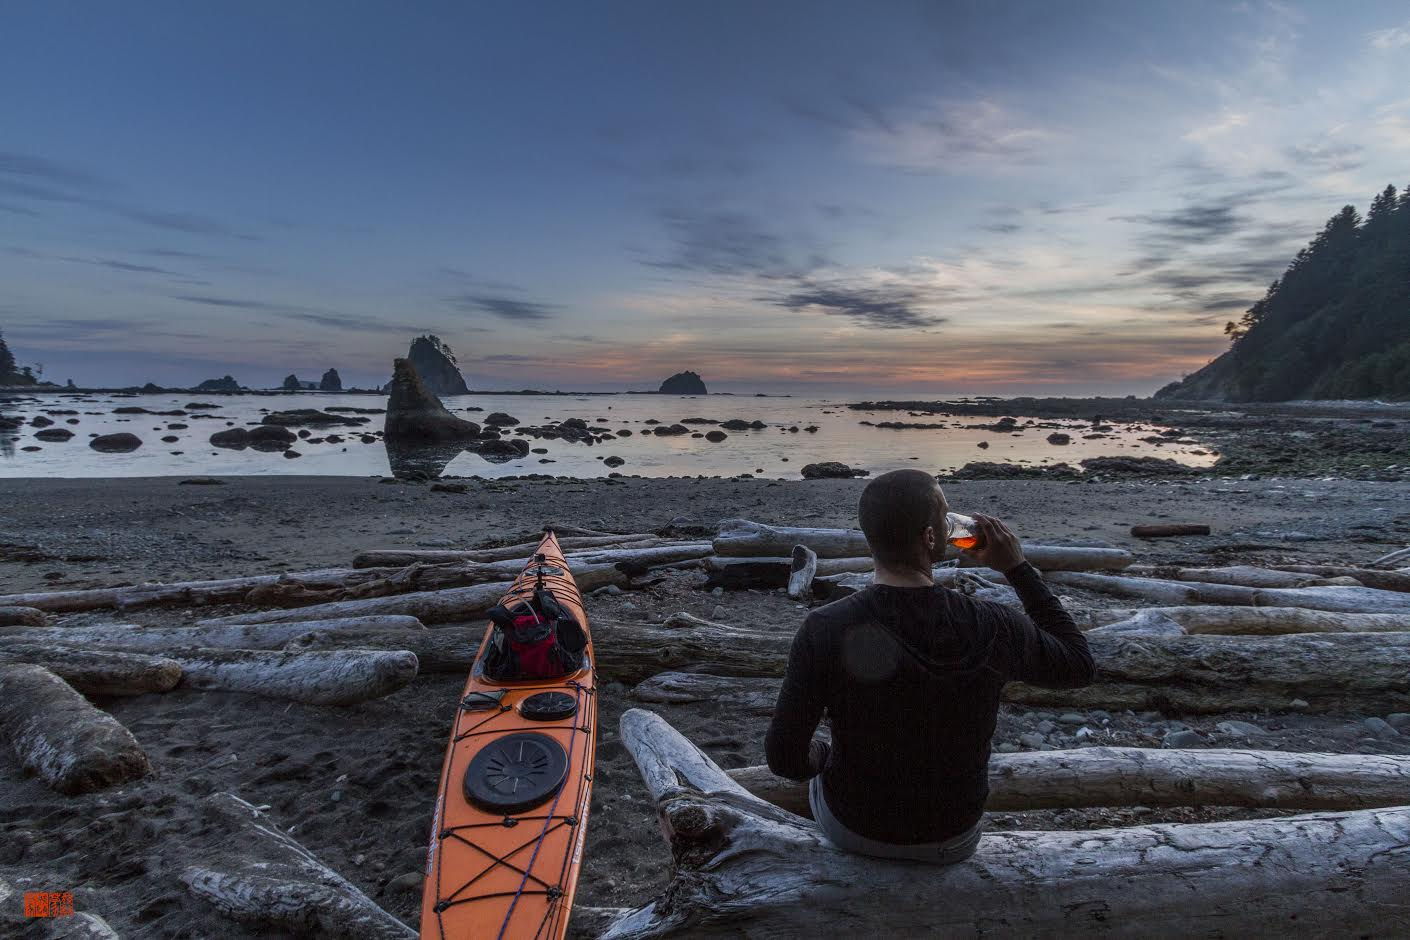 Daniel Fox's image of a kayaker and kayak on a beach during sunset.